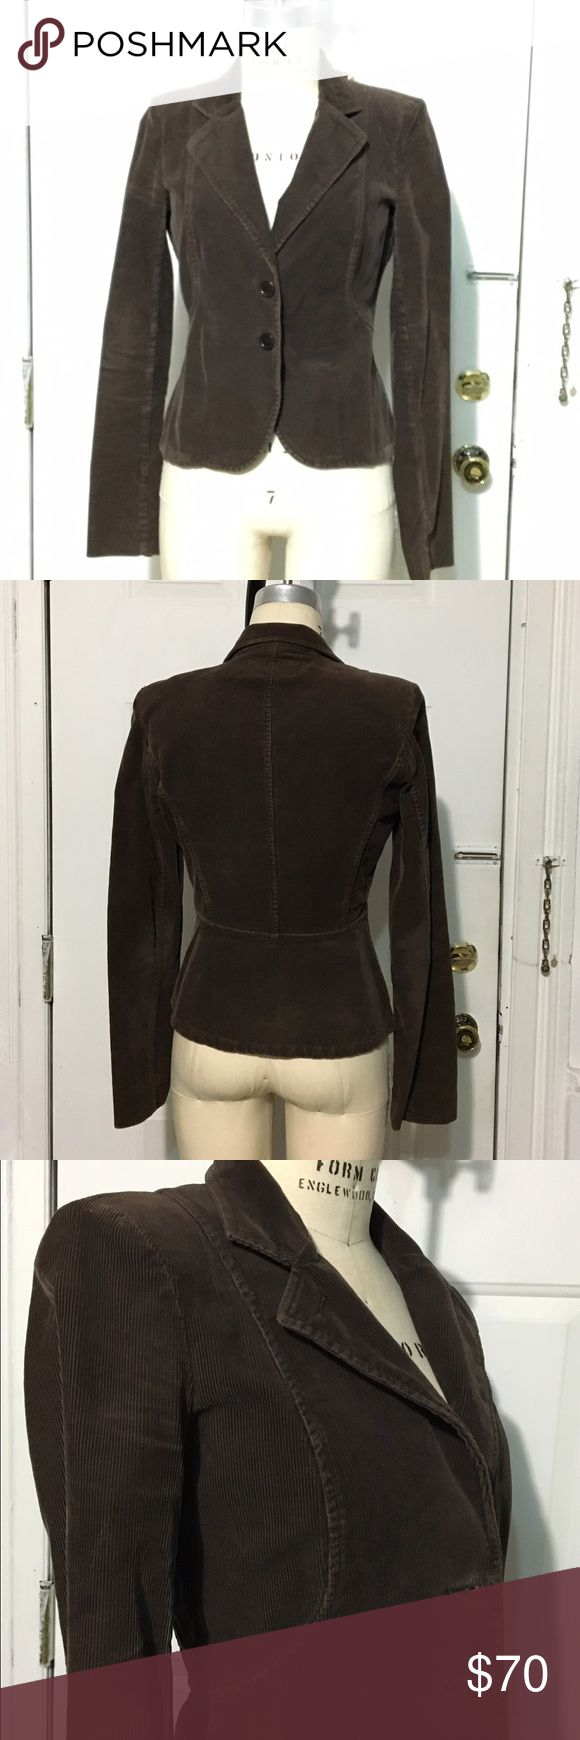 French Connection Chocolate Brown Corduroy Blazer Used. Chocolate Brown corduroy Blazer. Very good condition. Please view photos. Small shoulder pads, two front closure buttons. Peplum look from the back. Curved princess seams from the front. French Connection Jackets & Coats Blazers